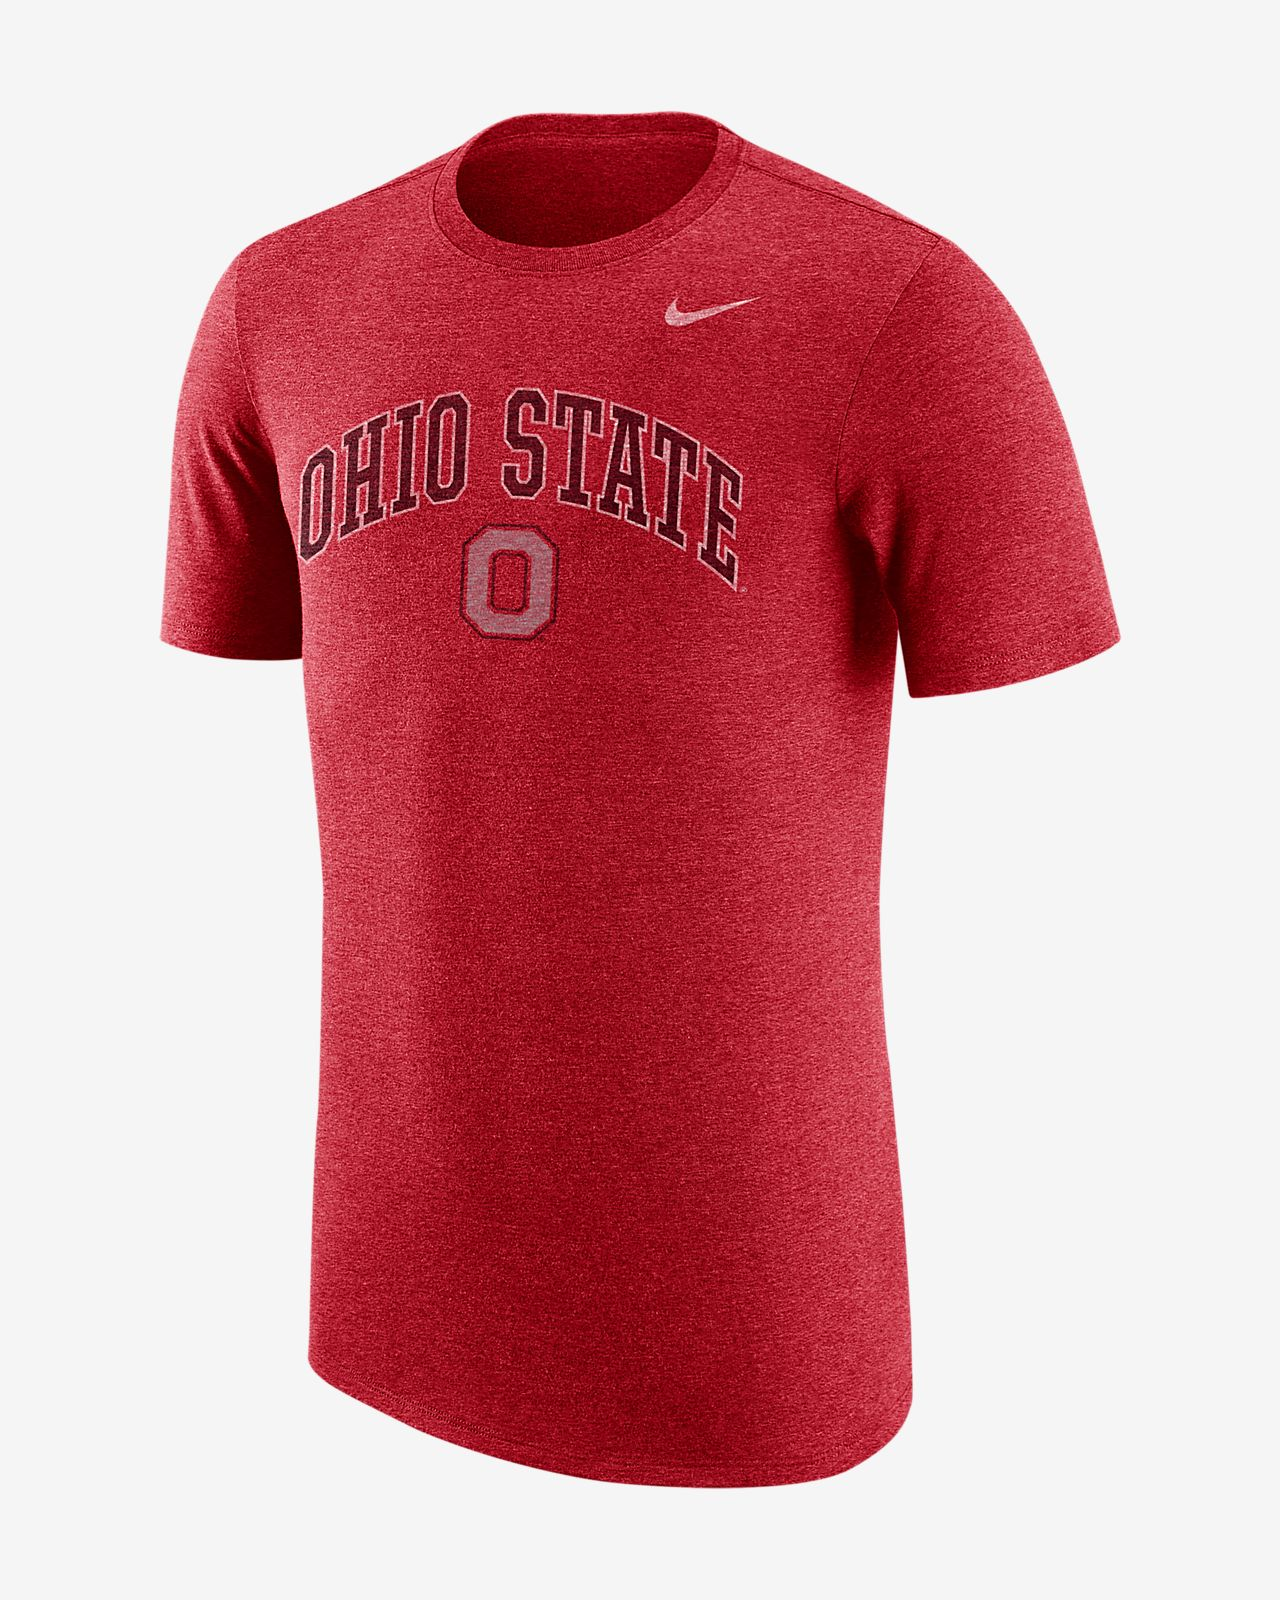 Nike College (Ohio State) Men's T-Shirt